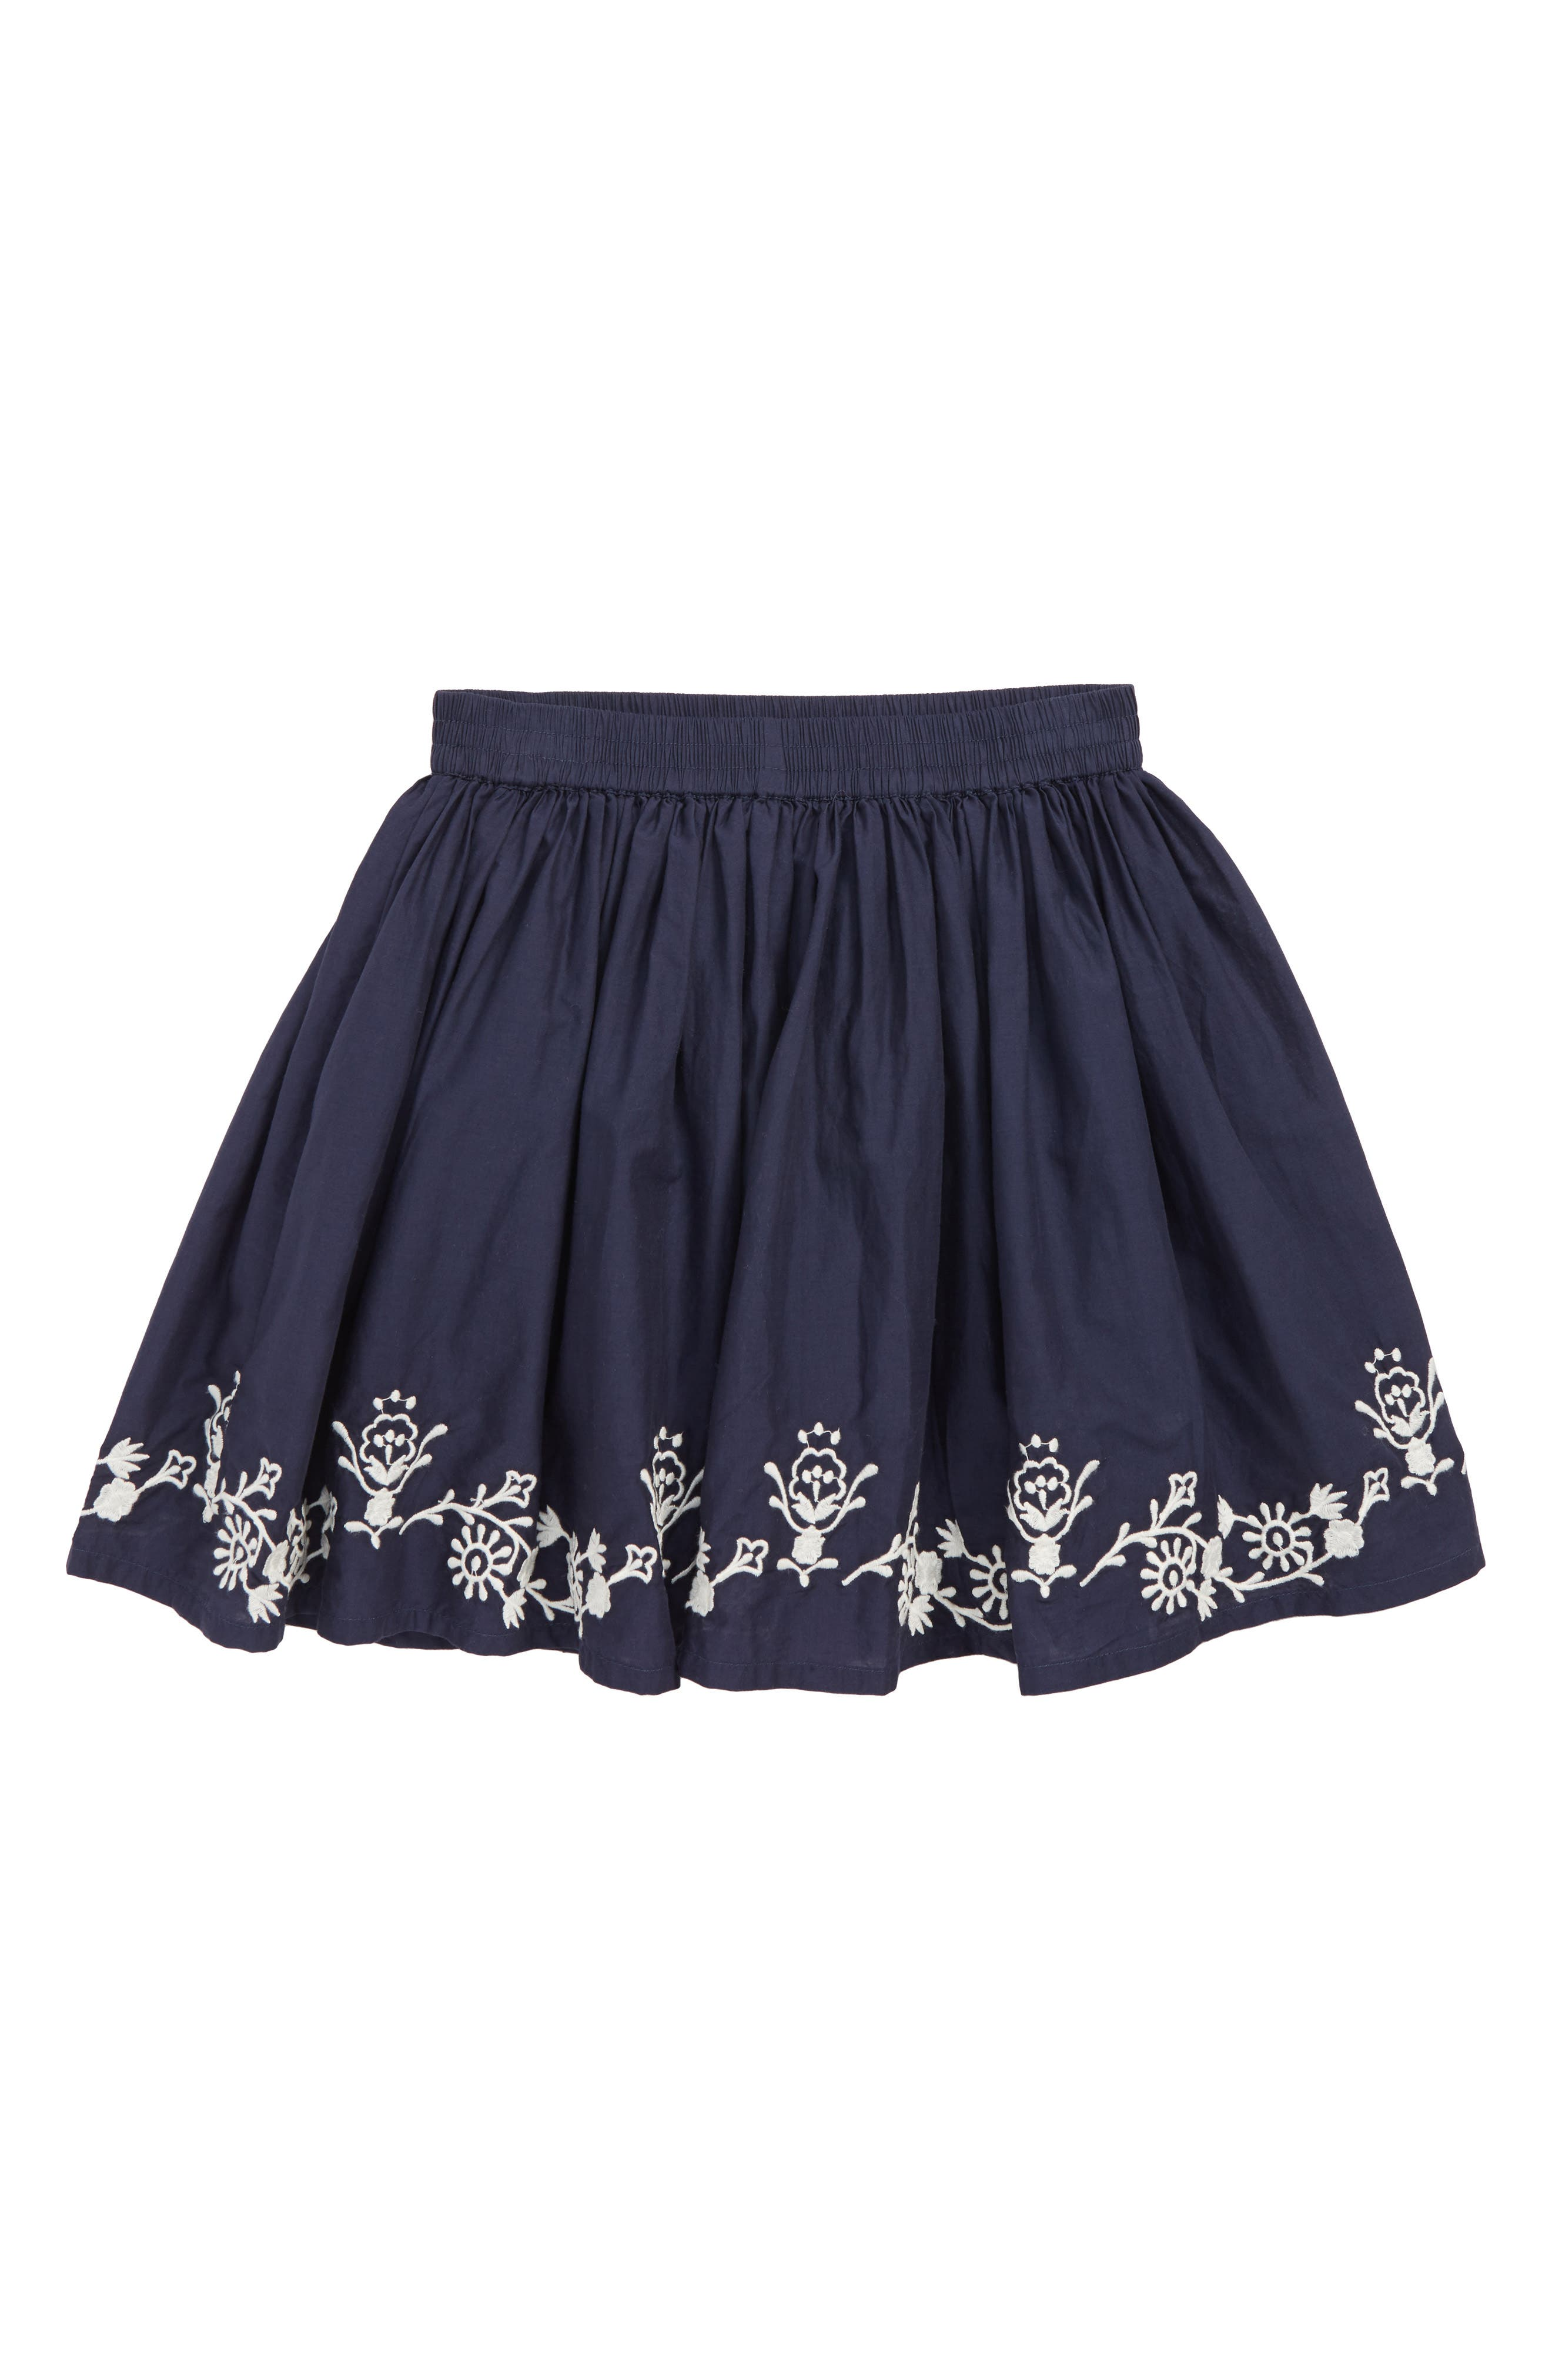 Girls Ruby  Bloom Embroidered Skirt Size 4  Blue